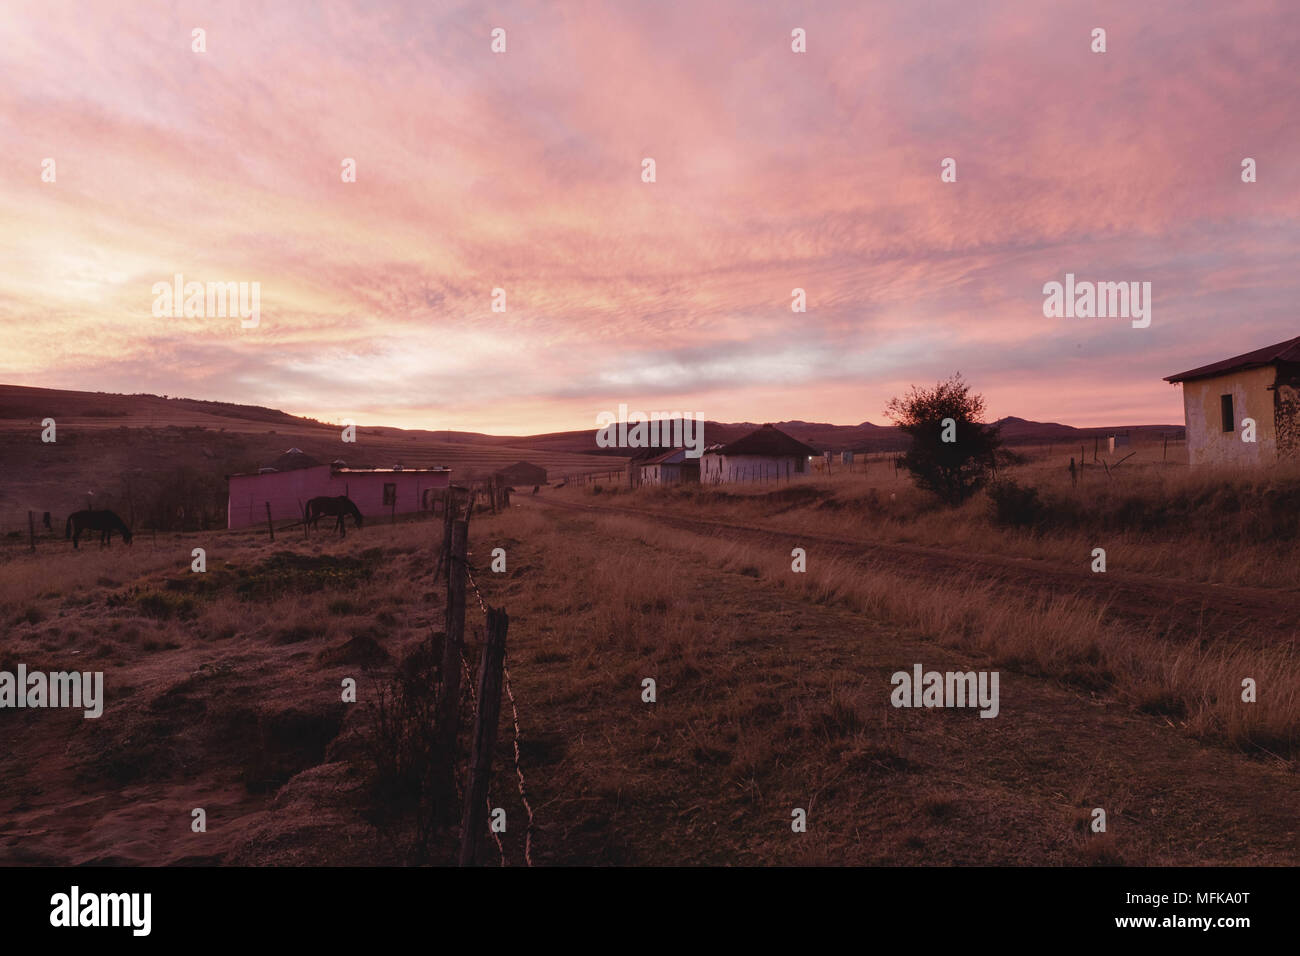 Xhosa Initiation Stock Photos Images Page Wiring A House In South Africa Matatiele Eastern Cape 11th June 2016 Sunset